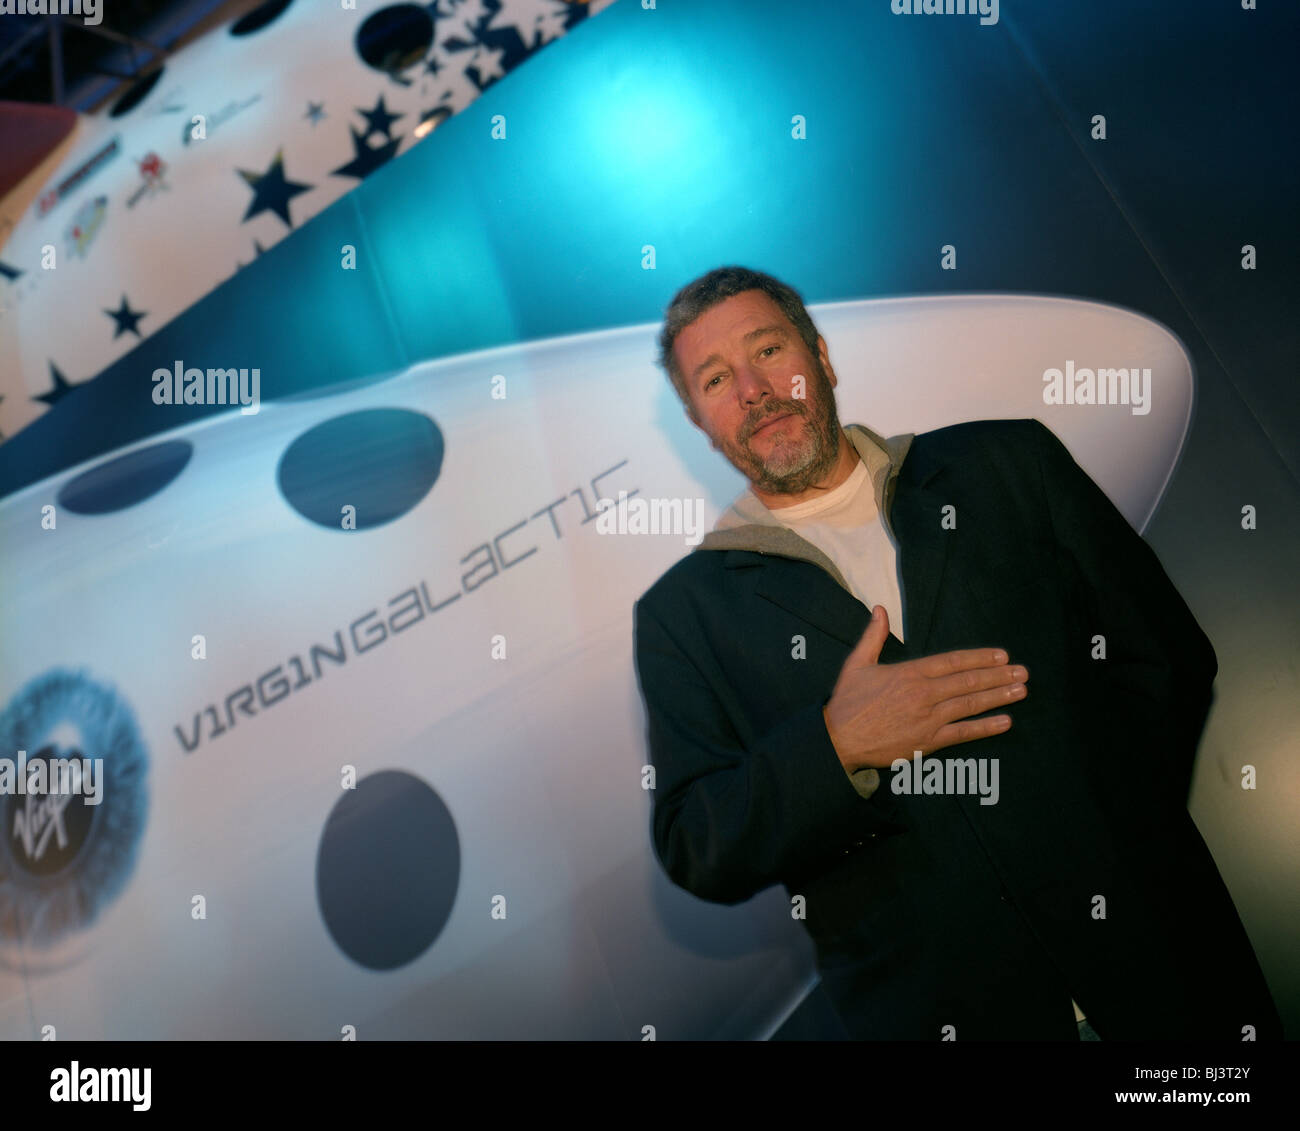 Designer Phillippe Starck standing at the nose of Virgin Galactic's SpaceShipTwo during its unveiling at NextFest. - Stock Image